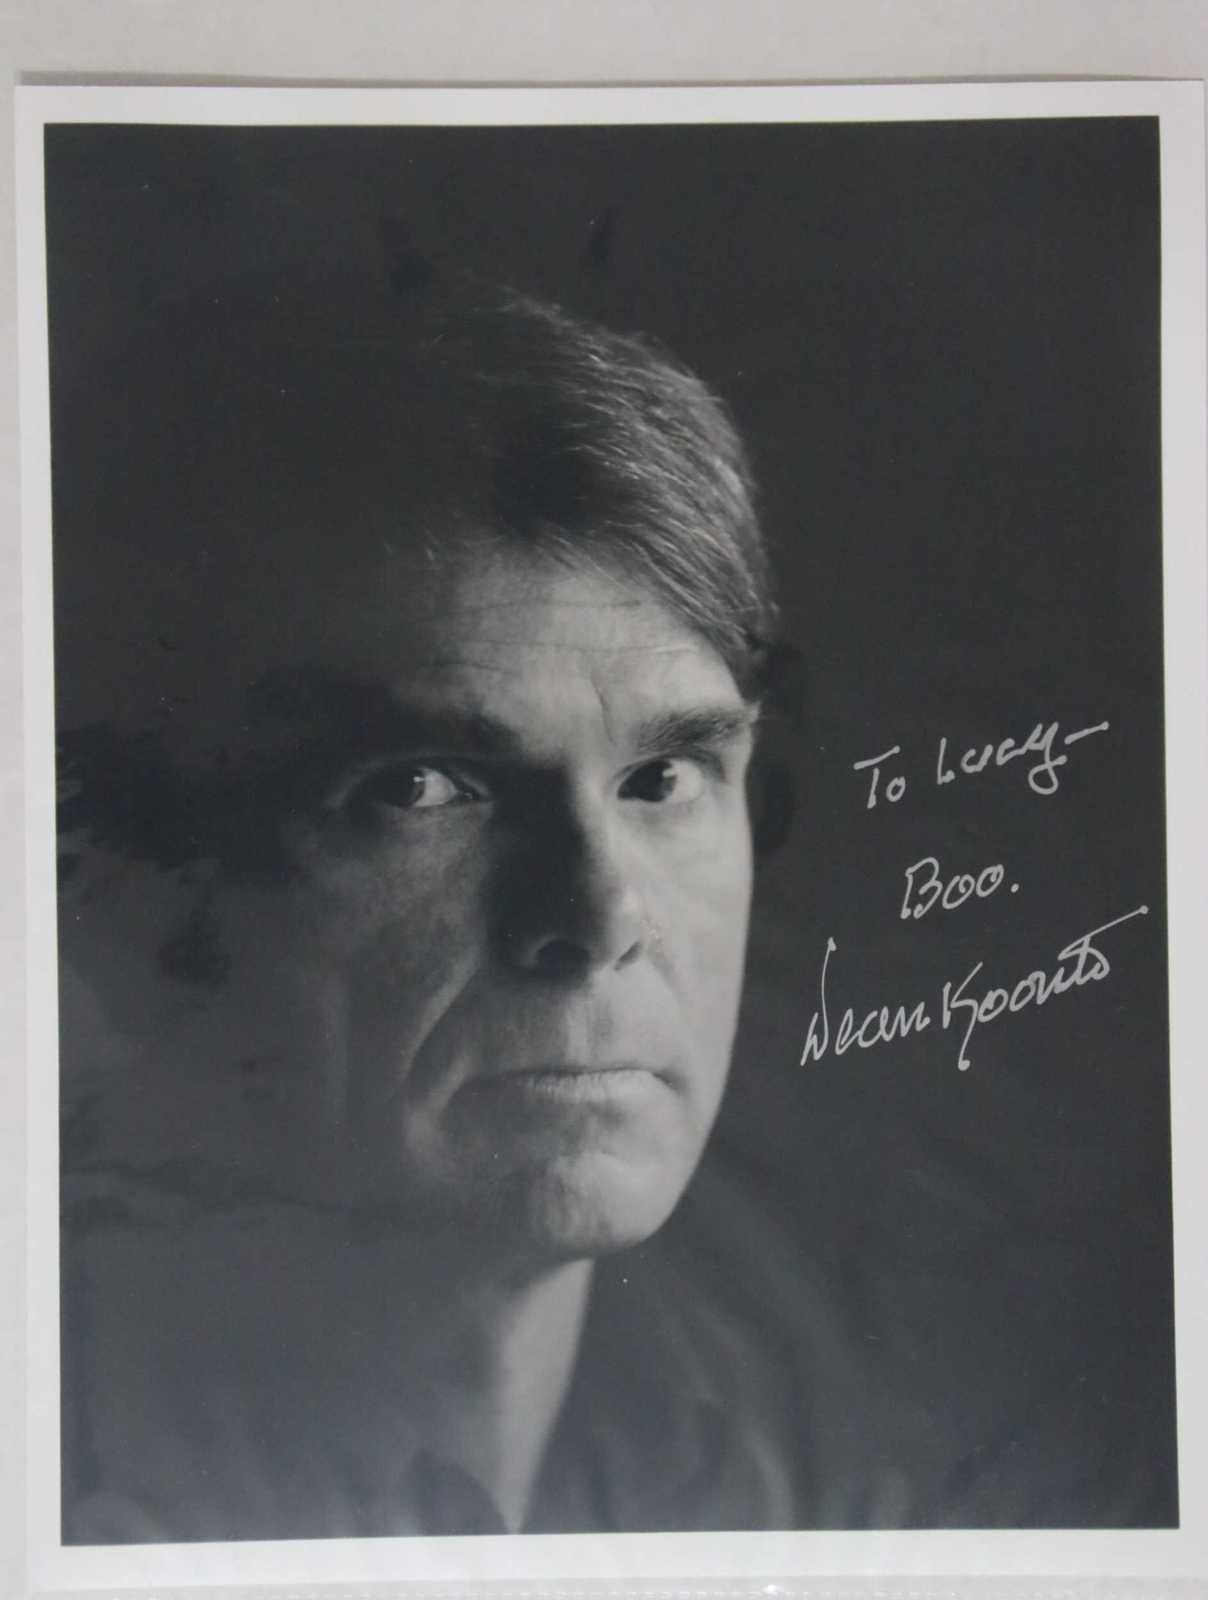 Primary image for Dean Koontz Signed Autographed Glossy 8x10 Photo